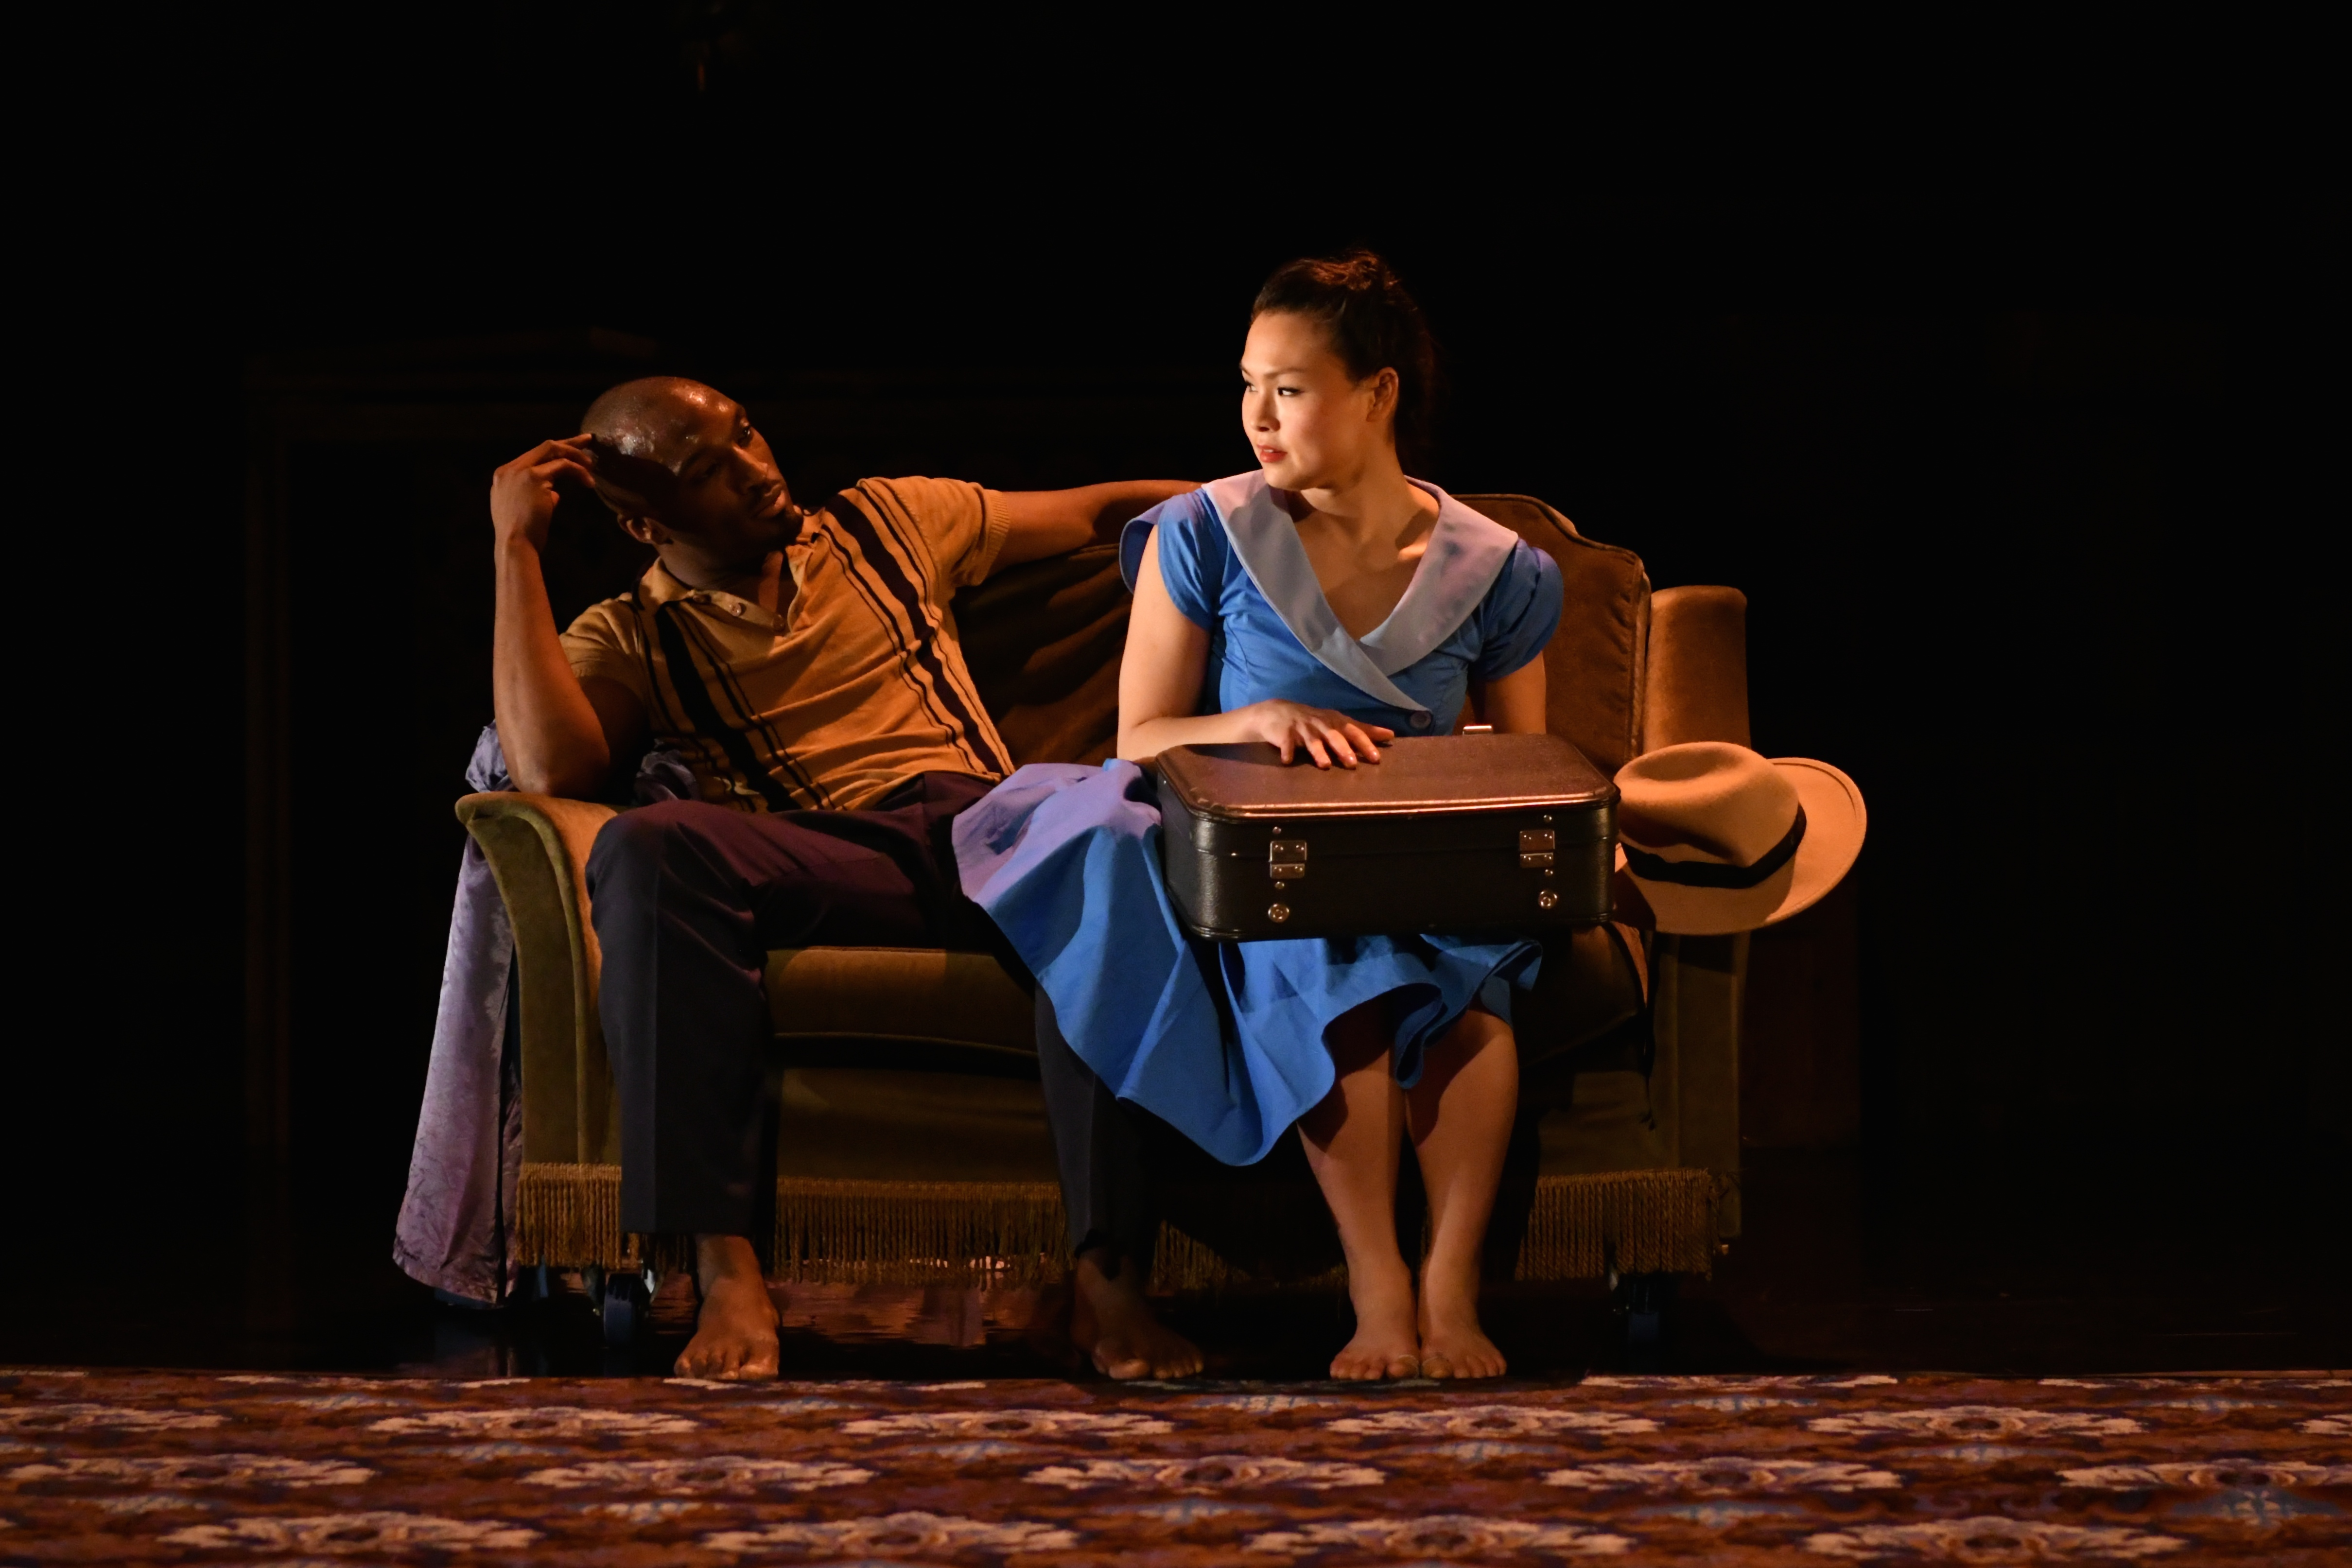 Prentice Whitlow and Vanessa Vince-Pang in Windrush: Movement of the People at York Theatre Royal. Photo: Brian Slater.